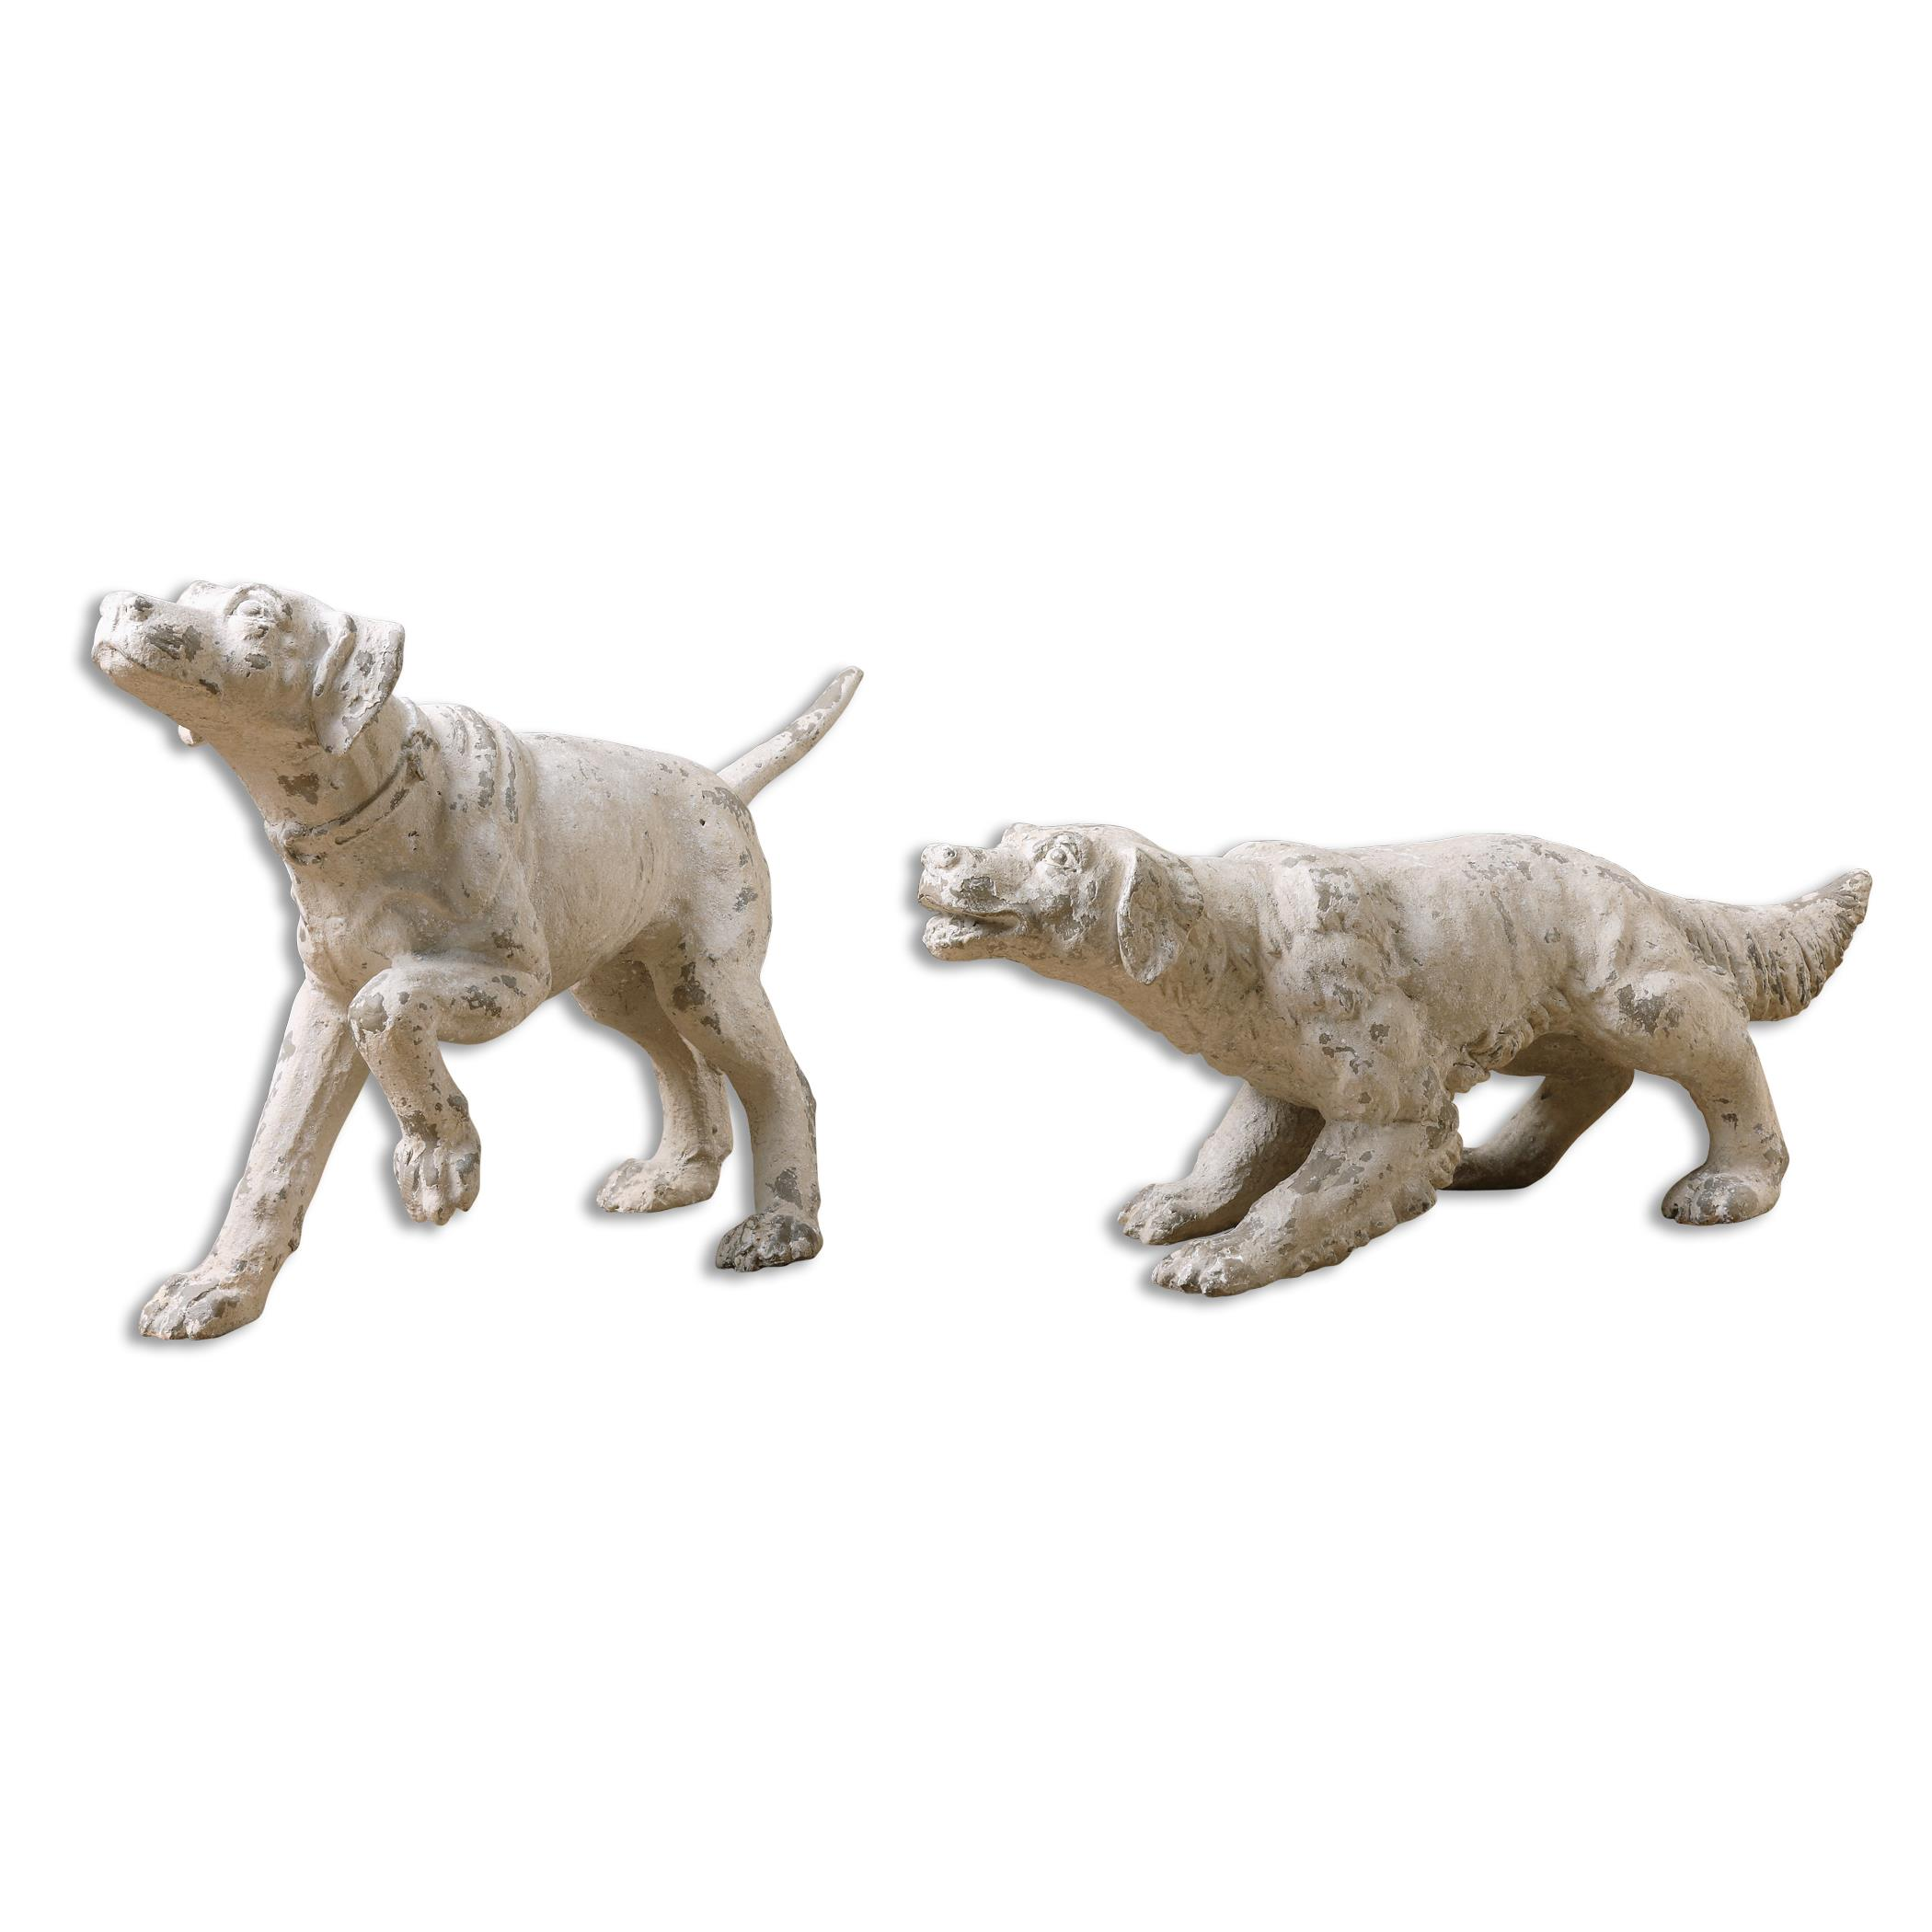 Uttermost Accessories Hudson and Penny Dog Sculptures, S/2 - Item Number: 19920